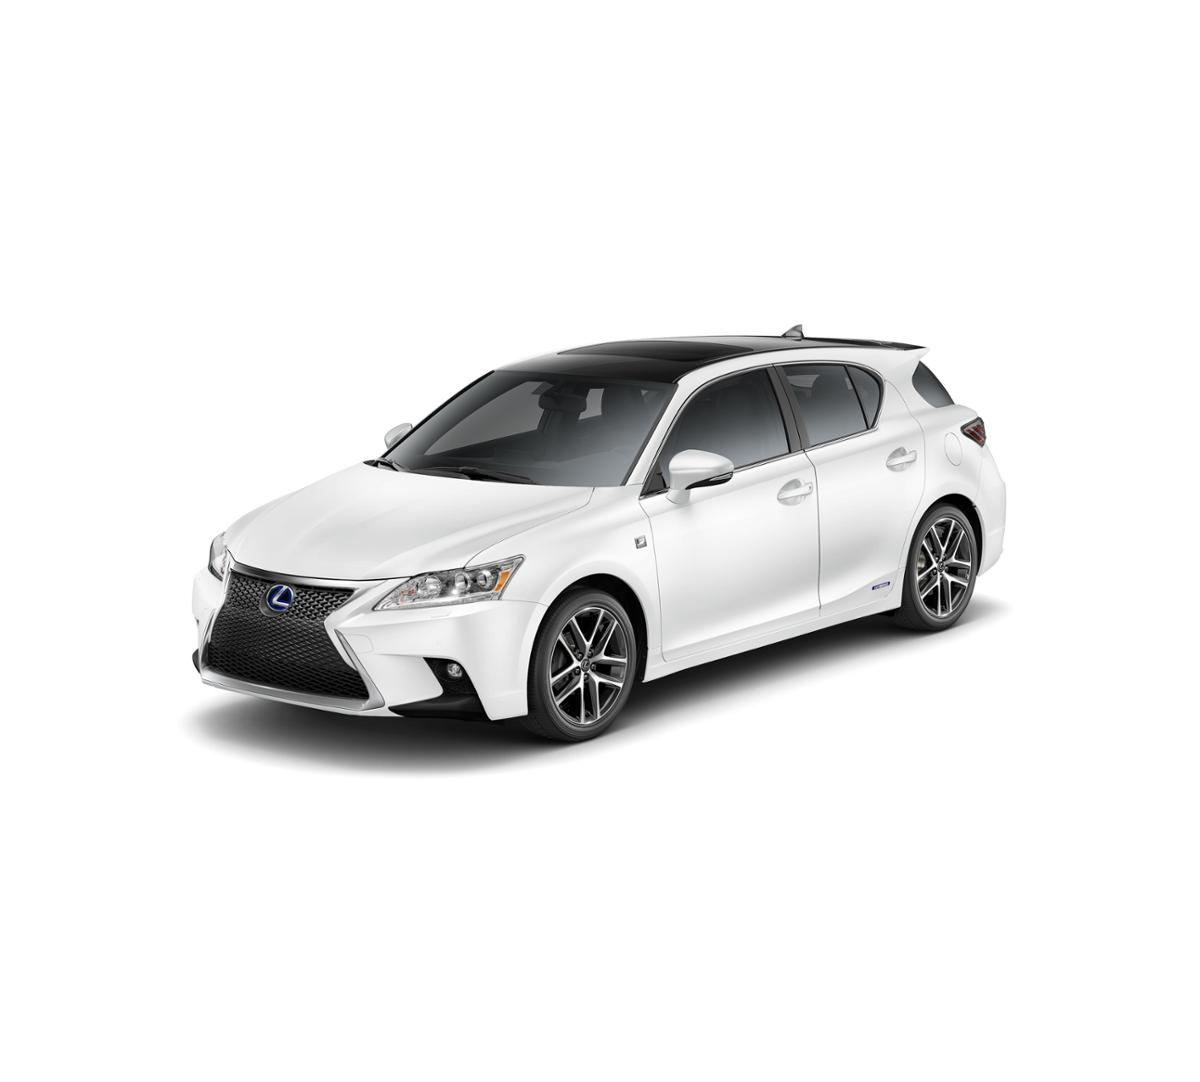 2017 Lexus CT 200h Vehicle Photo in Mission Viejo, CA 92692